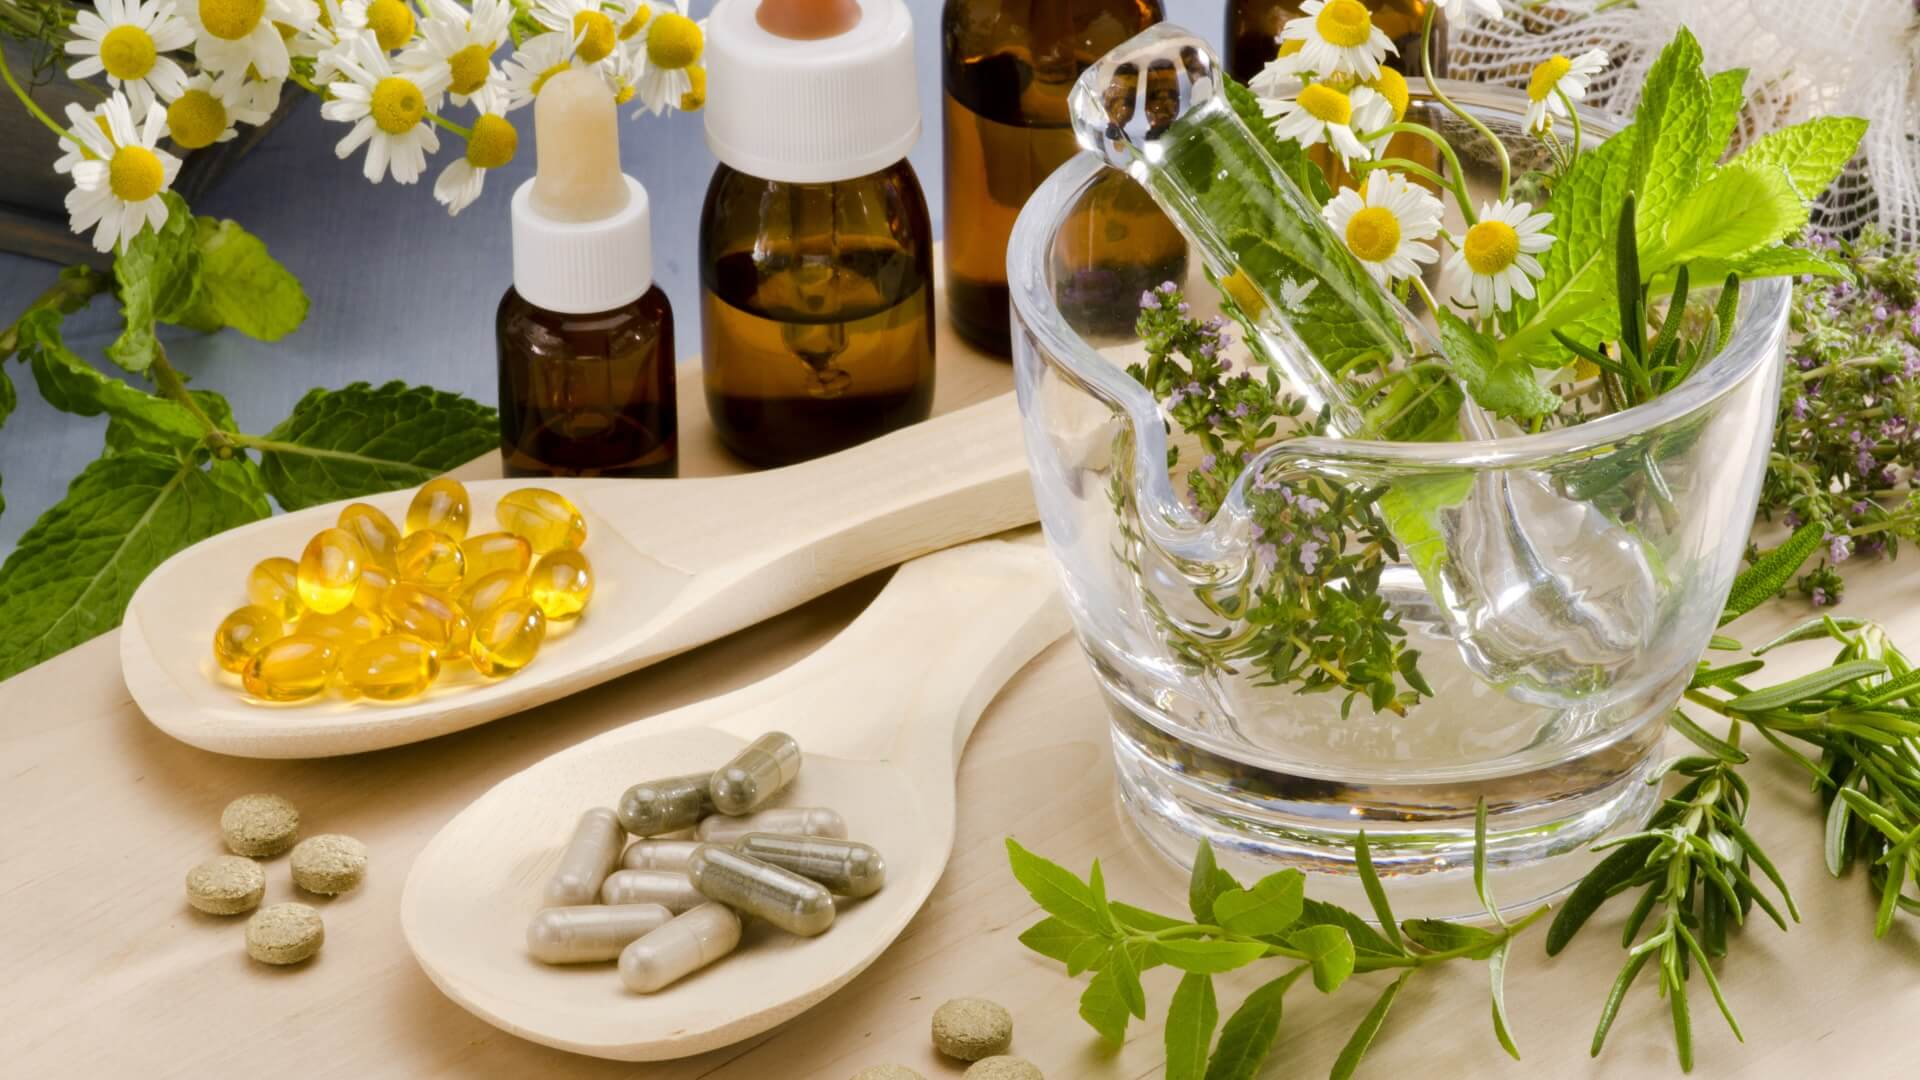 How can you cleanse organism with Ayurvedic detox?